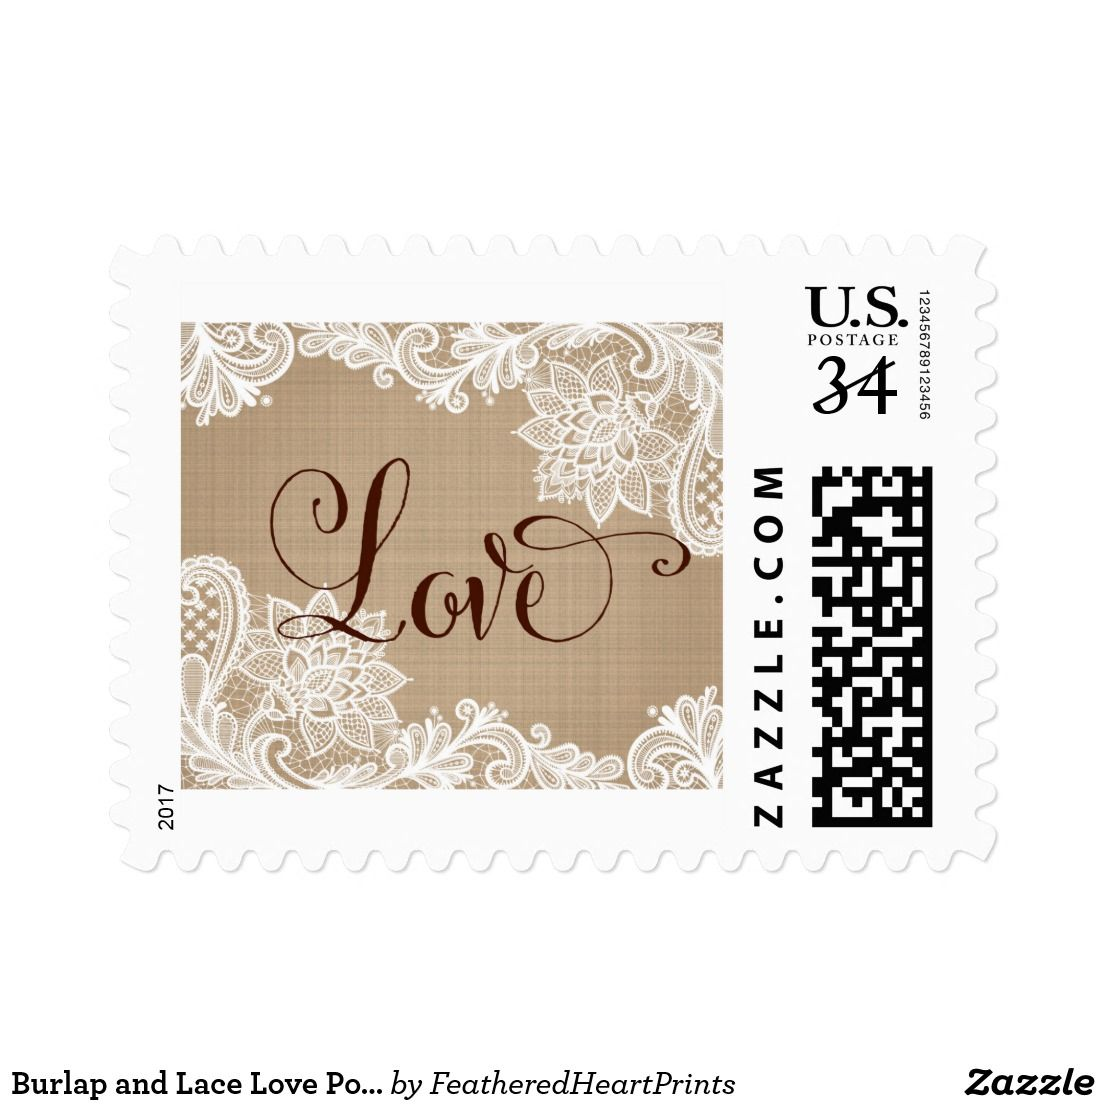 Burlap and Lace Love Postage Stamp   Zazzle com   Postage